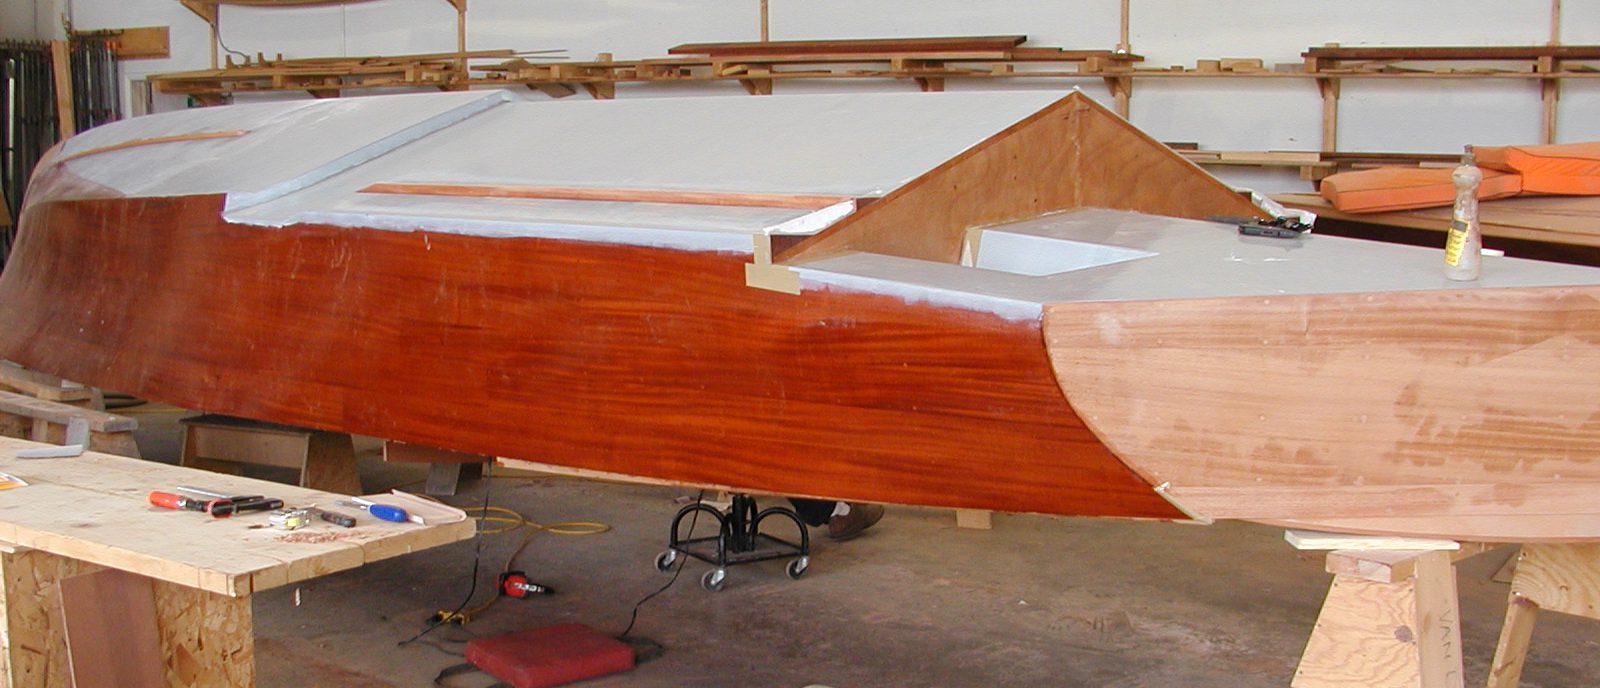 Applying fiberglass cloth to hull of Jacqueline before painting